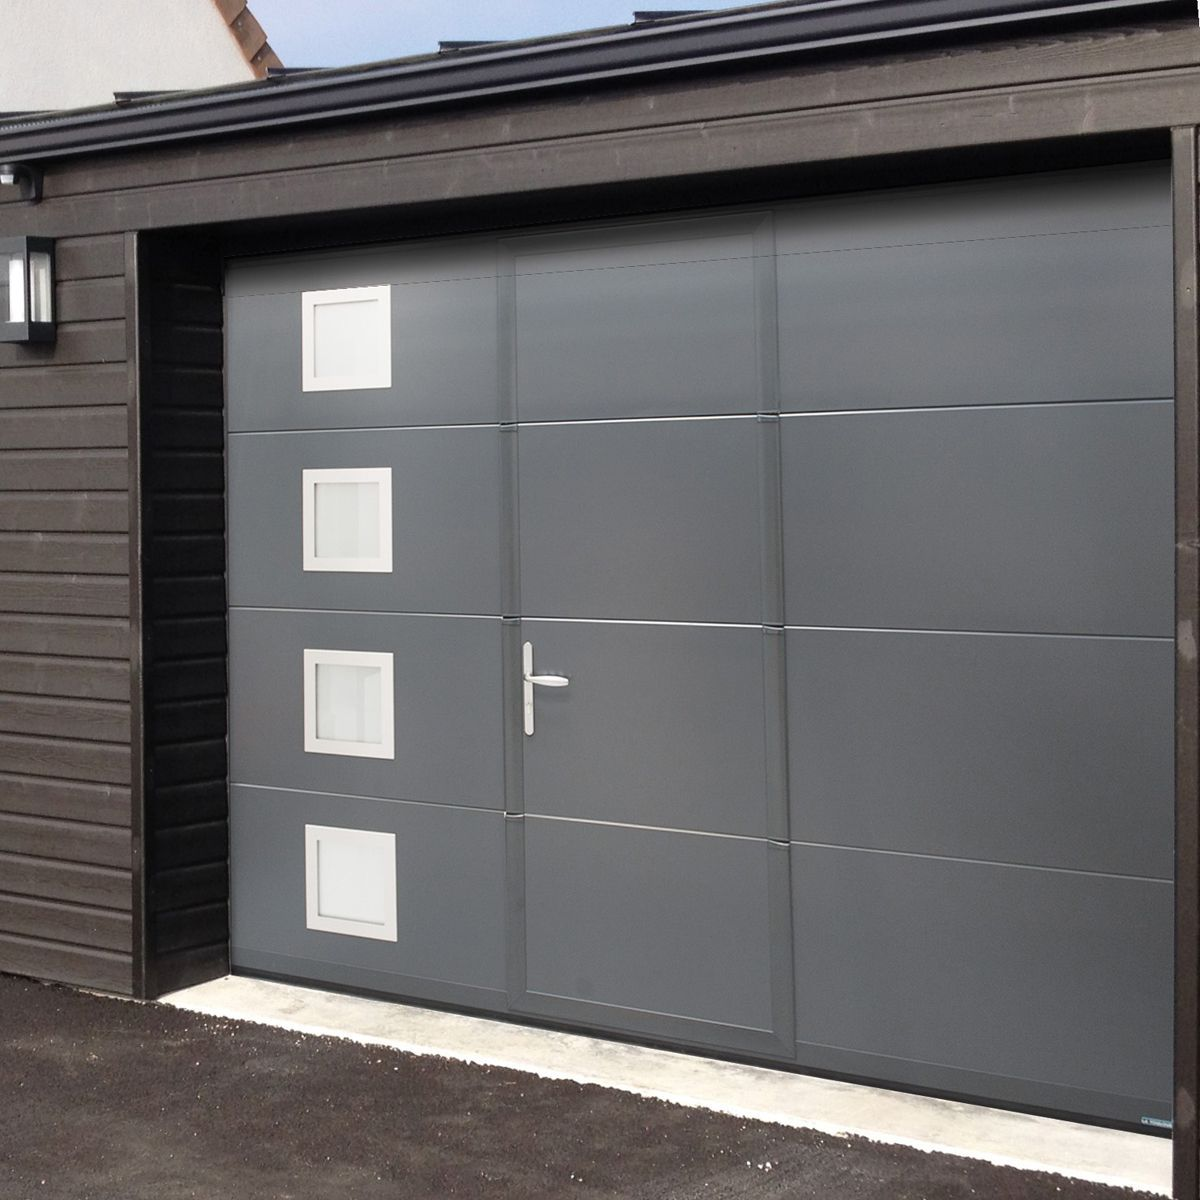 Portes de garage fabriqu es en france sur mesure isoferm for Porte garage automatique avec portillon